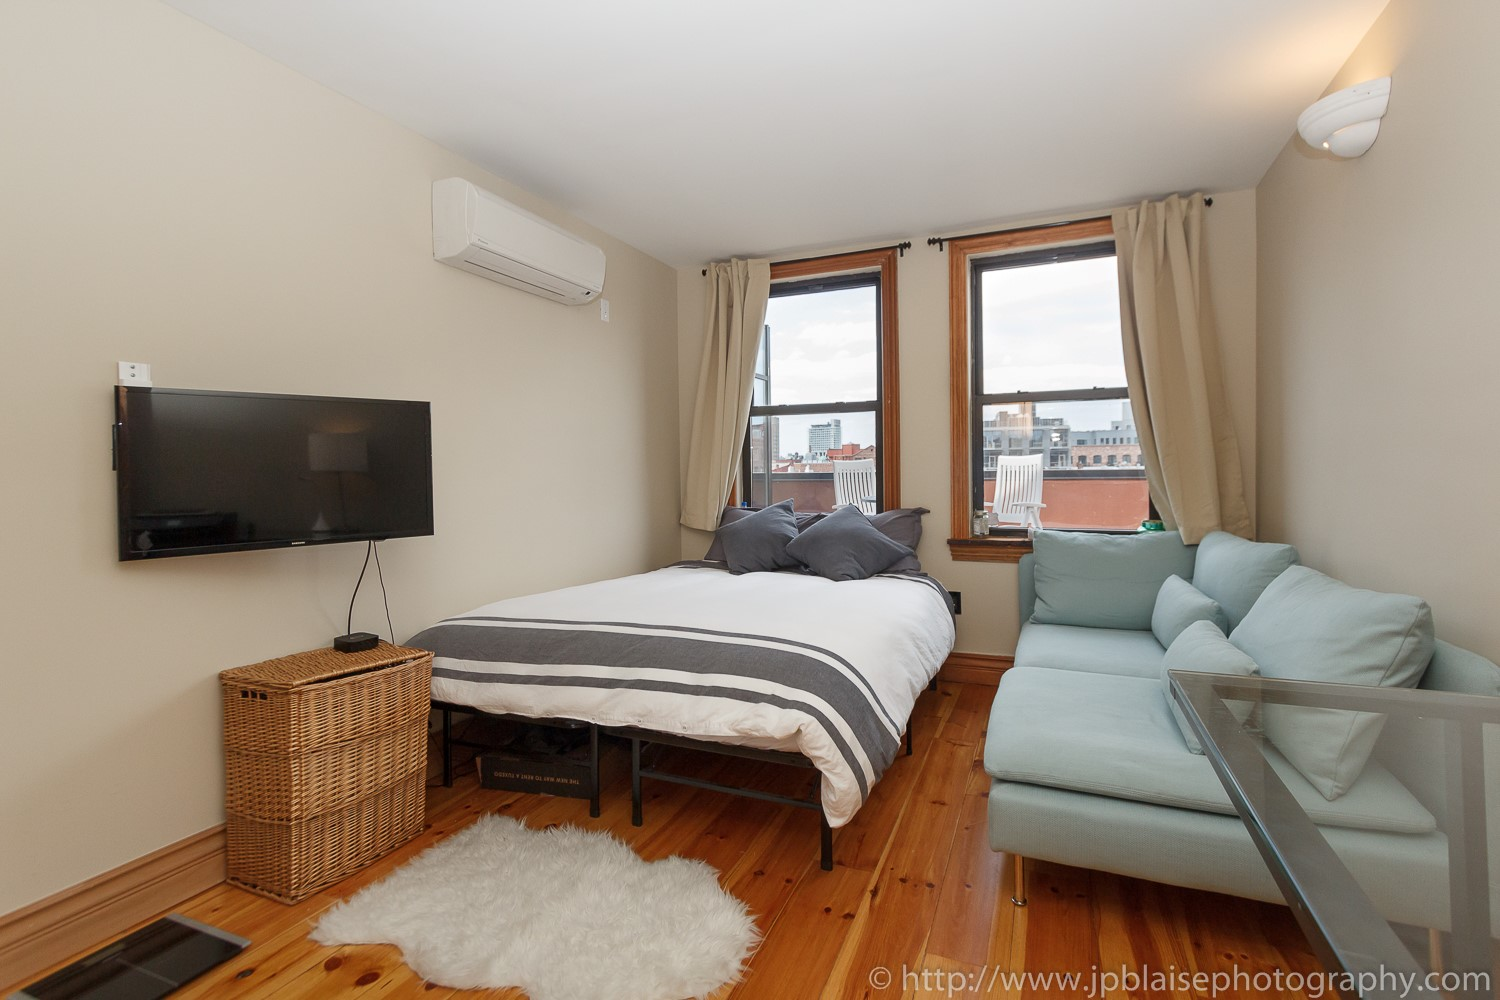 Bedroom to rent in williamsburg apartment brooklyn photography